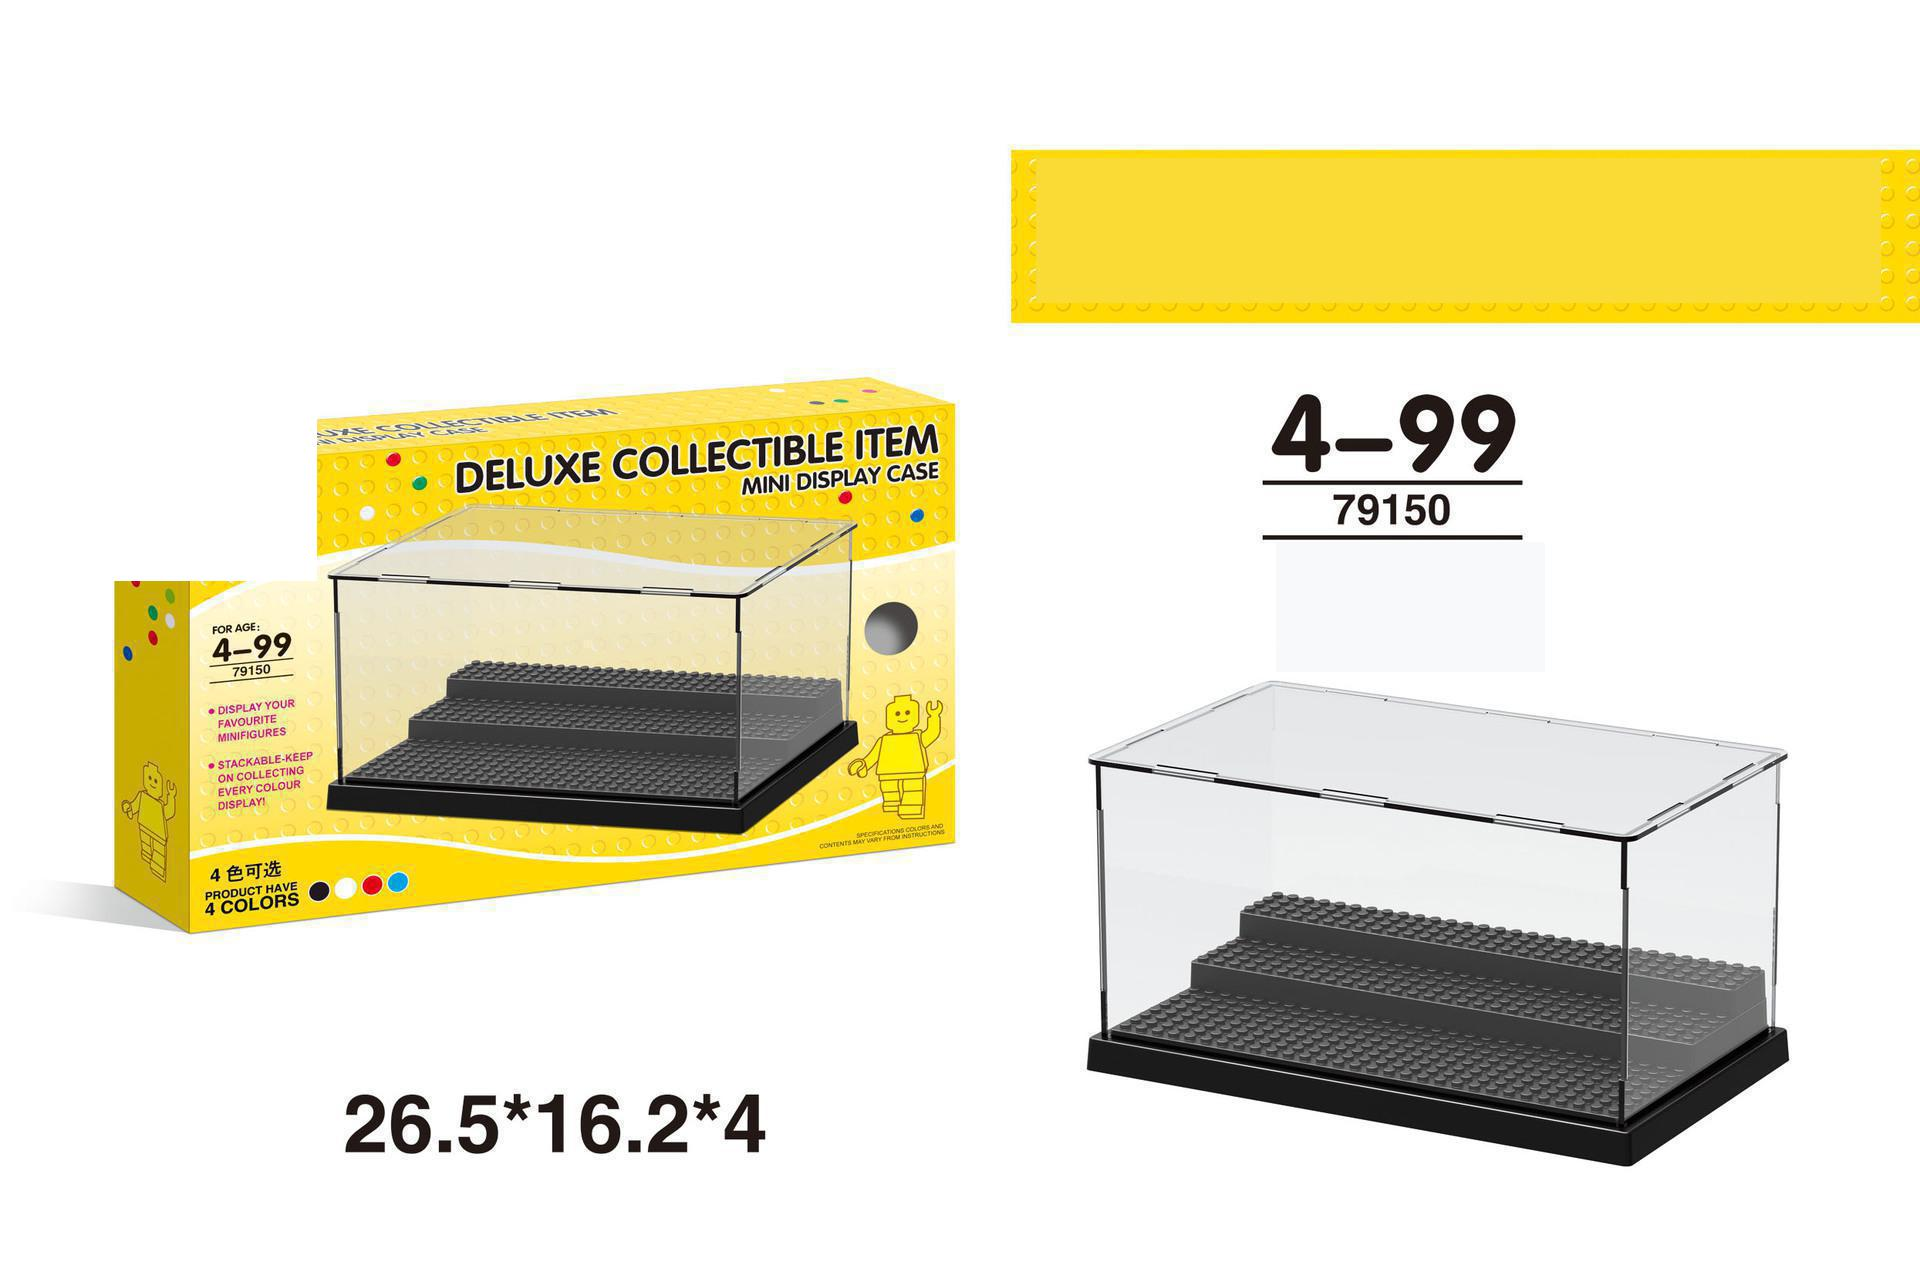 Compatible With Legoings 79150 Dinosaur Figures Deluxe Acrylic Collectible Building Blocks Display Mini Box Display Case BricksCompatible With Legoings 79150 Dinosaur Figures Deluxe Acrylic Collectible Building Blocks Display Mini Box Display Case Bricks